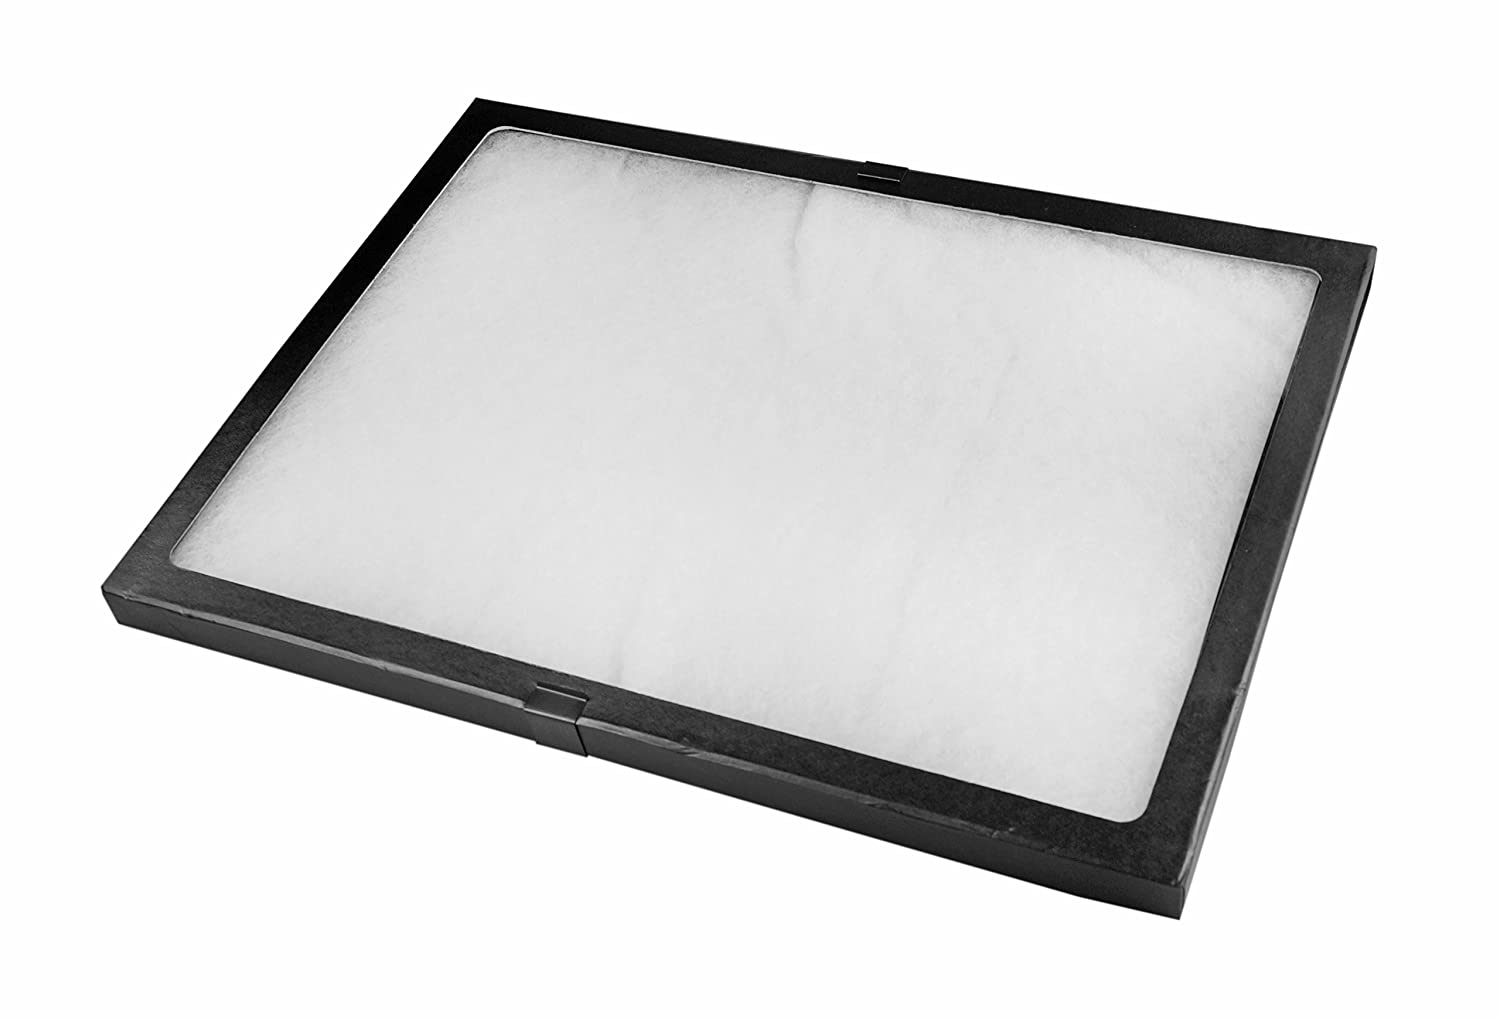 "SE JT9212 Glass Top Display Box with Metal Clips, 16"" x 12"" x 0.75"""